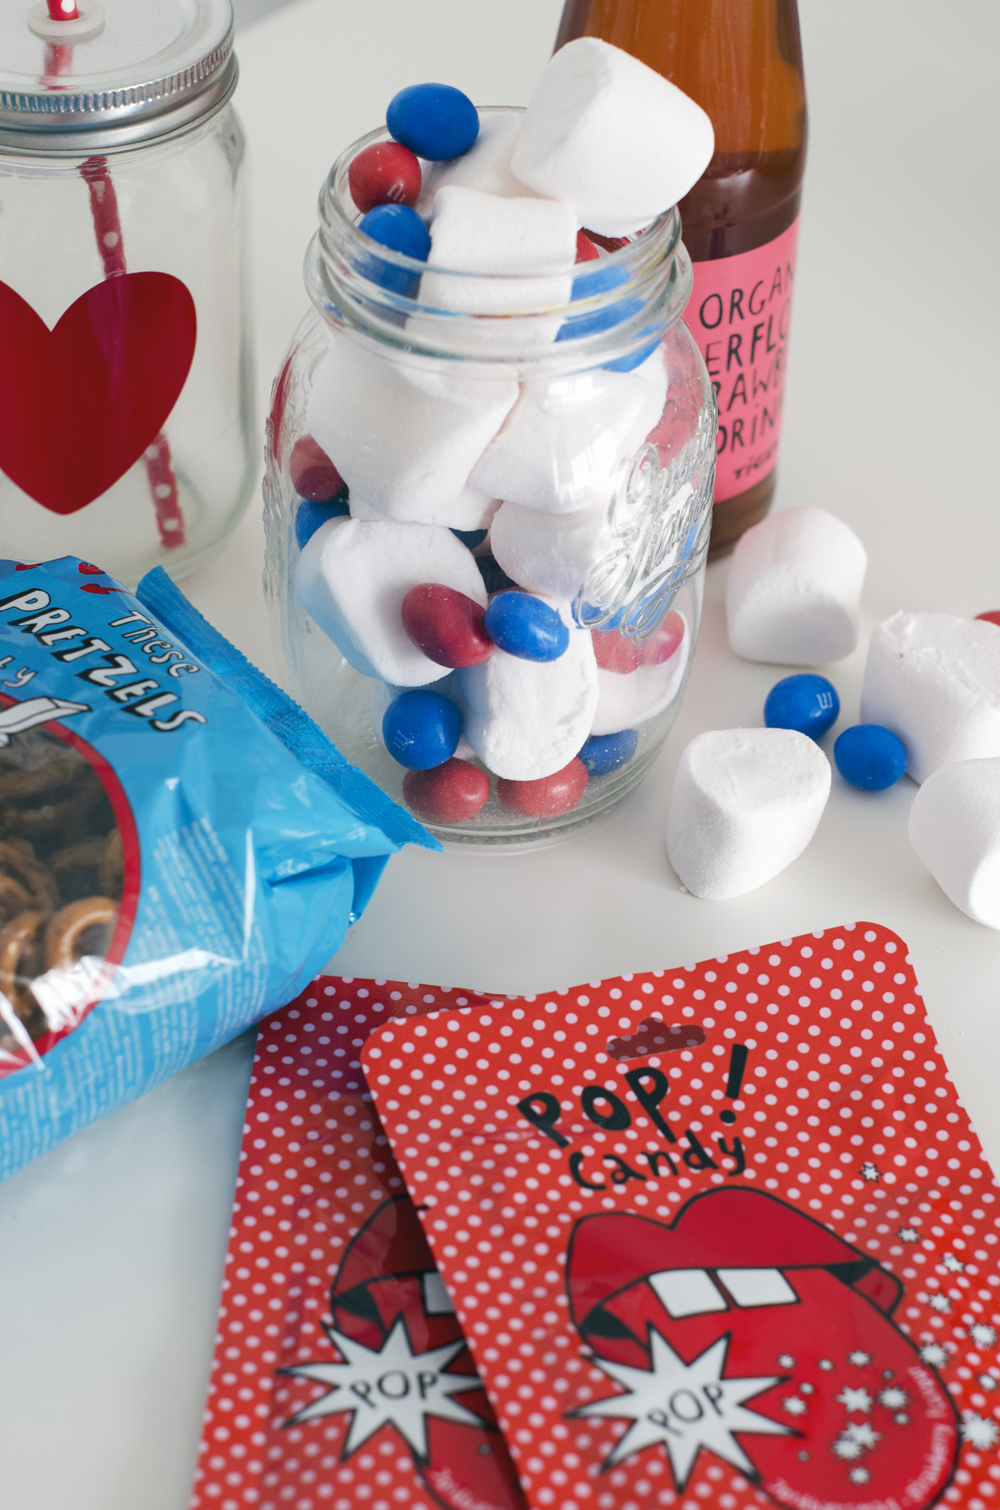 San valentino fai da te film romantici e pop corn con il movie basket for Decorazioni san valentino fai da te